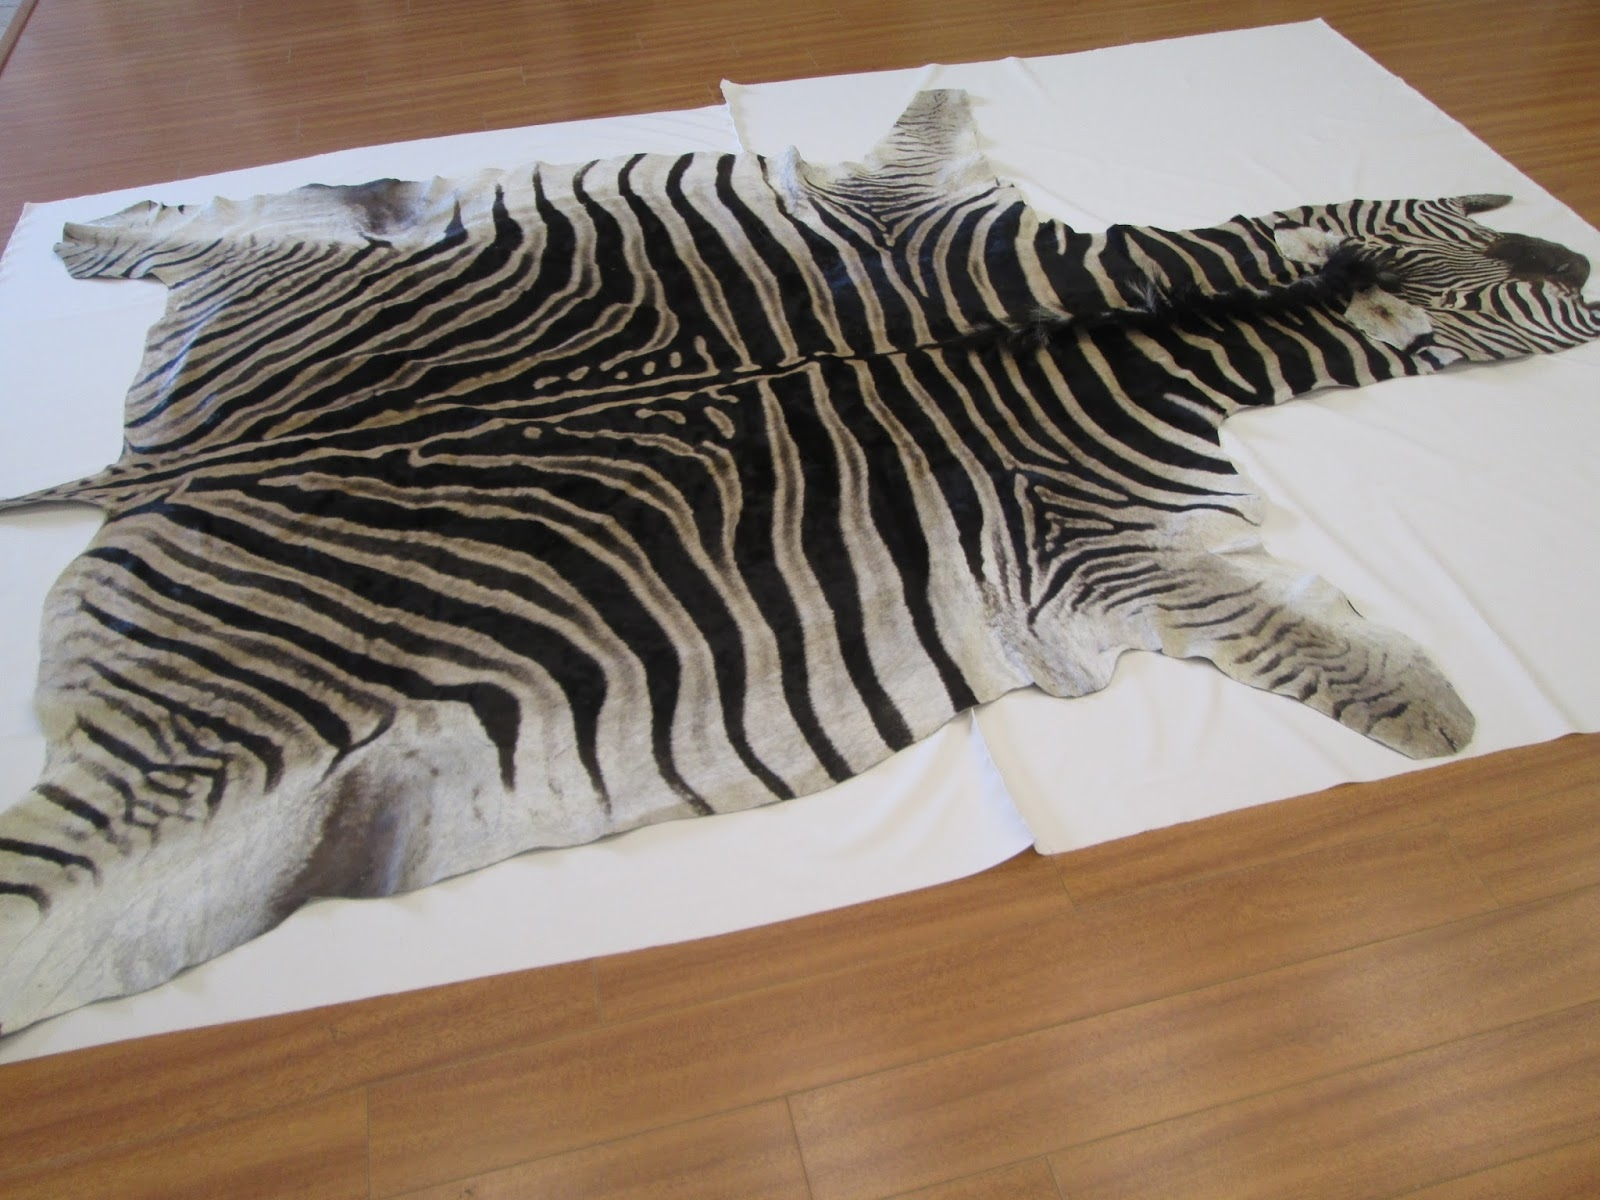 Rug Master Zebra Hide Zebra Skin Cleaning And Repair In Los Angeles Inside Zebra Skin Rugs (Image 7 of 15)